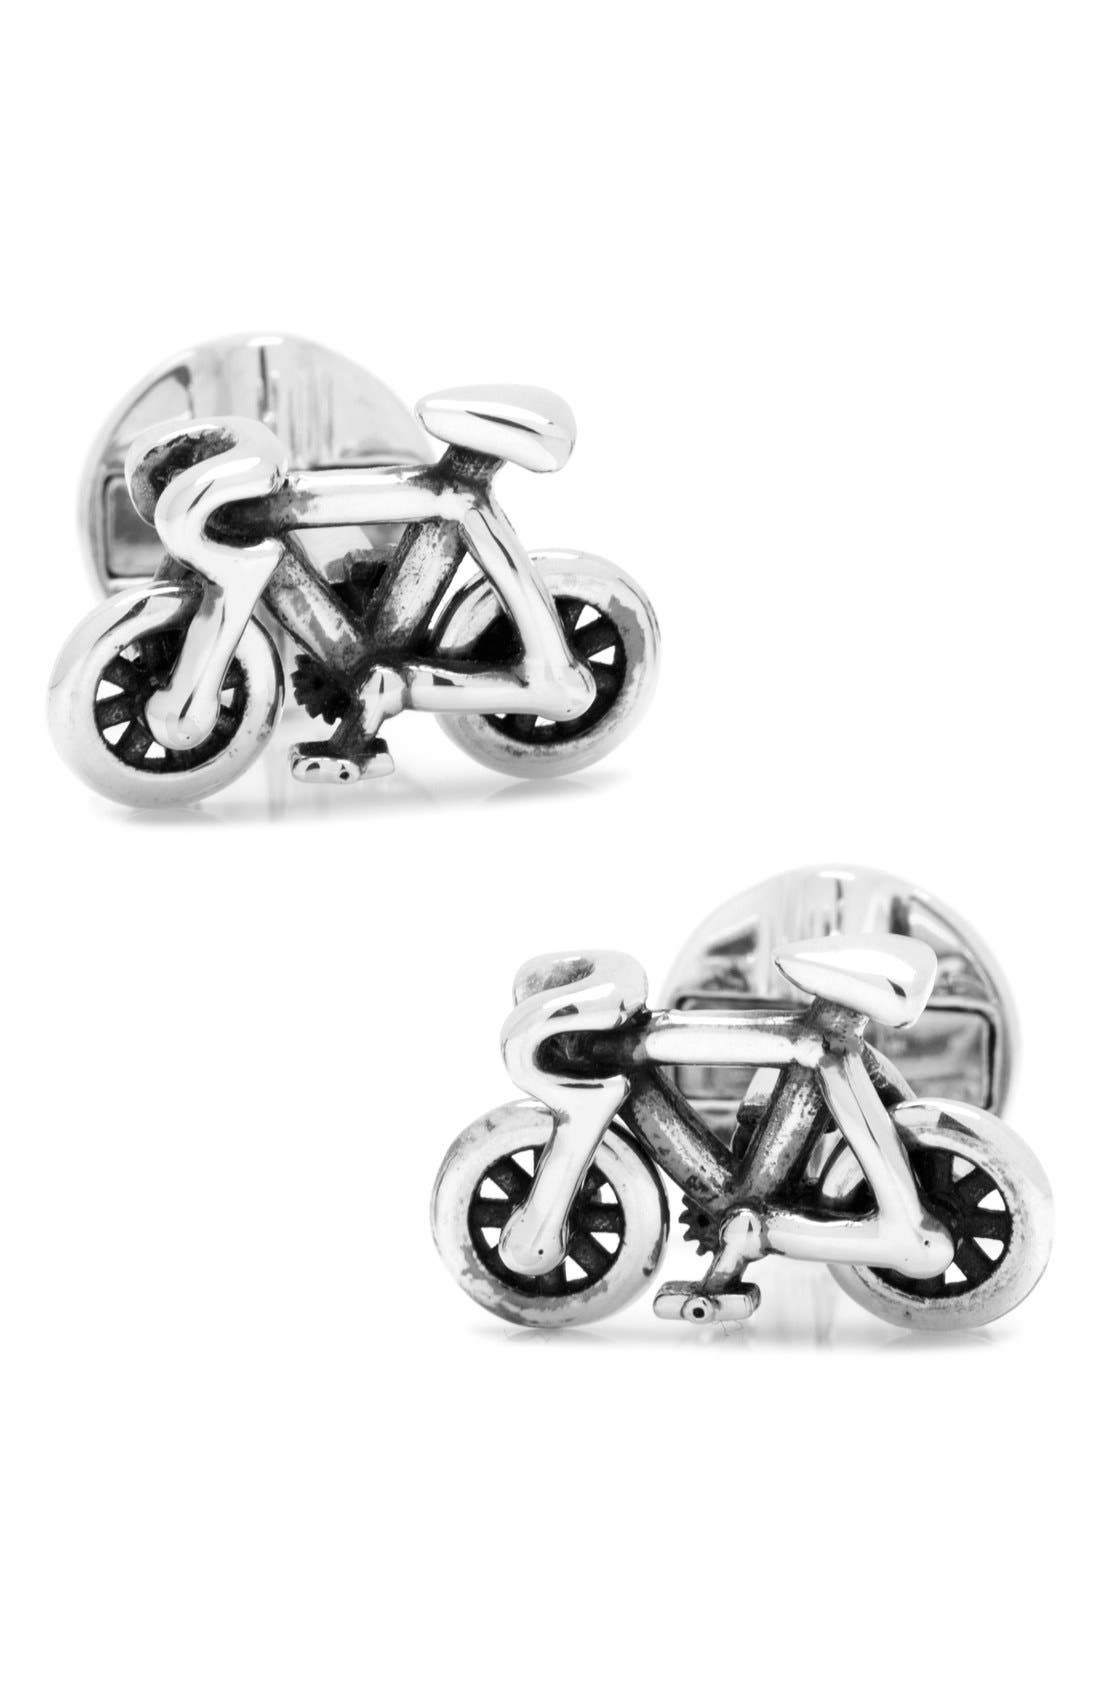 Alternate Image 1 Selected - Ox and Bull Trading Co. 'Bicycle' Cuff Links